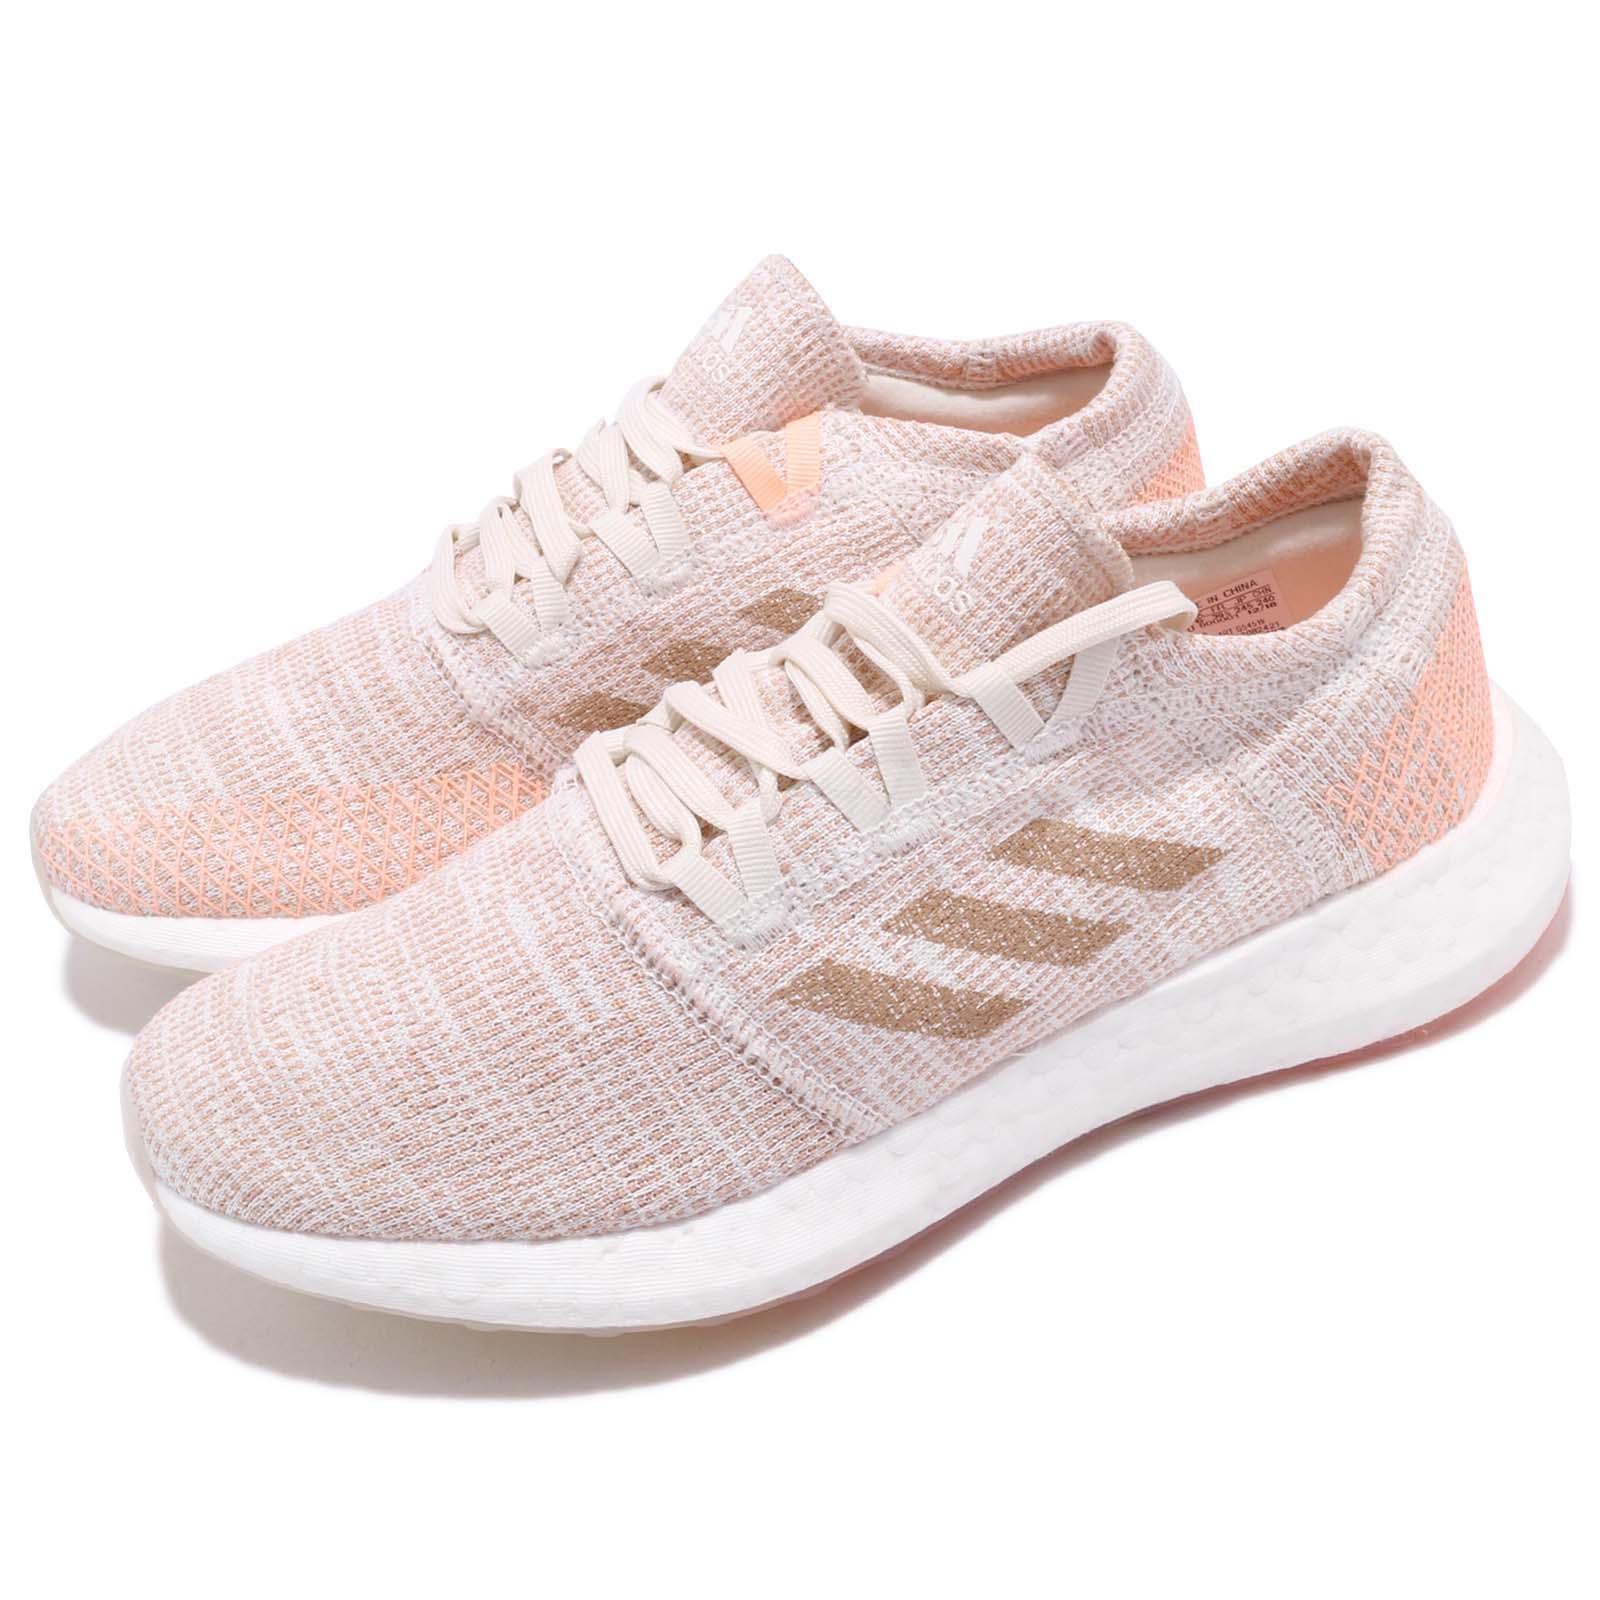 Details about adidas PureBOOST GO W Pink Orange White Women Running Shoes Sneakers G54519